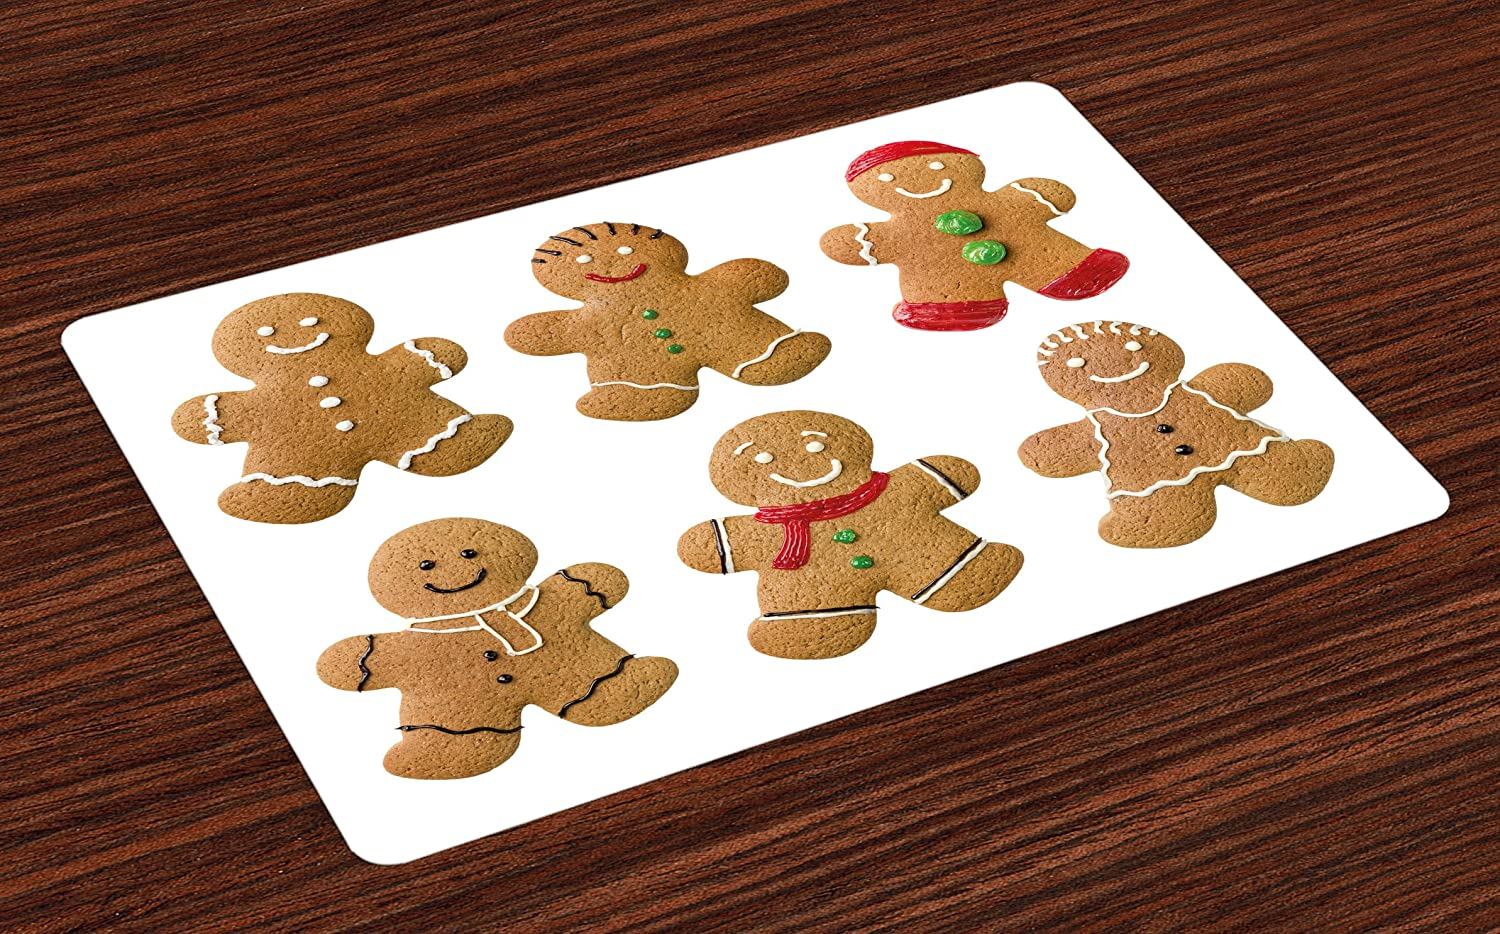 Ambesonne Gingerbread Man Place Mats Set of 4, Vivid Homemade Biscuits Sugary Xmas Treats Sweet Tasty Pastry, Washable Fabric Placemats for Dining Room Kitchen Table Decor, Pale Brown Red Green